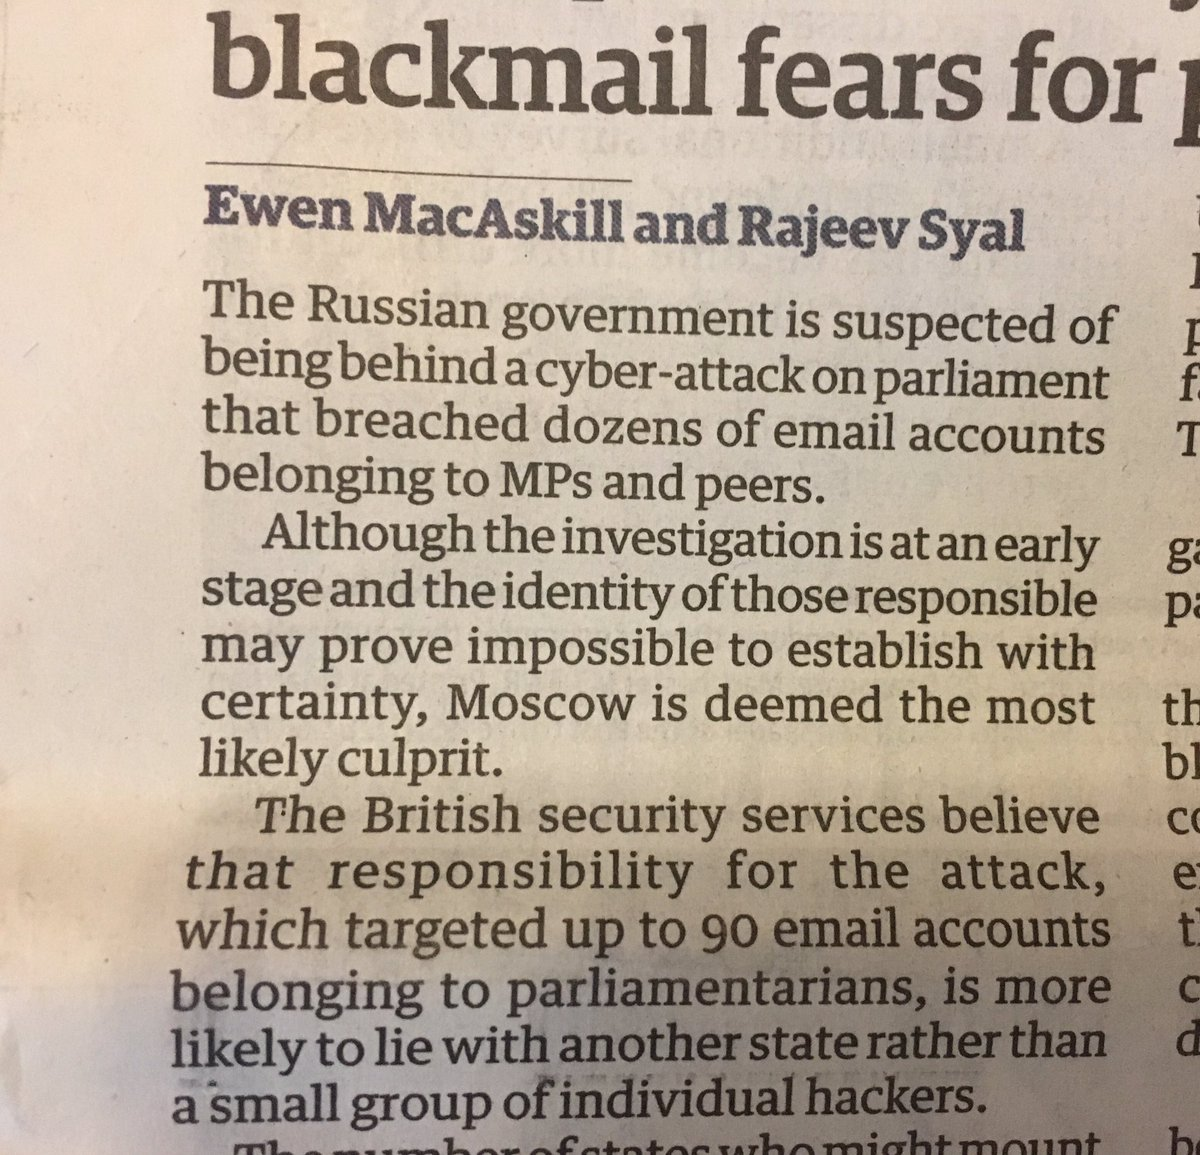 """Rule 35: Moscow is always """"the most likely culprit"""". No exceptions. No proof."""